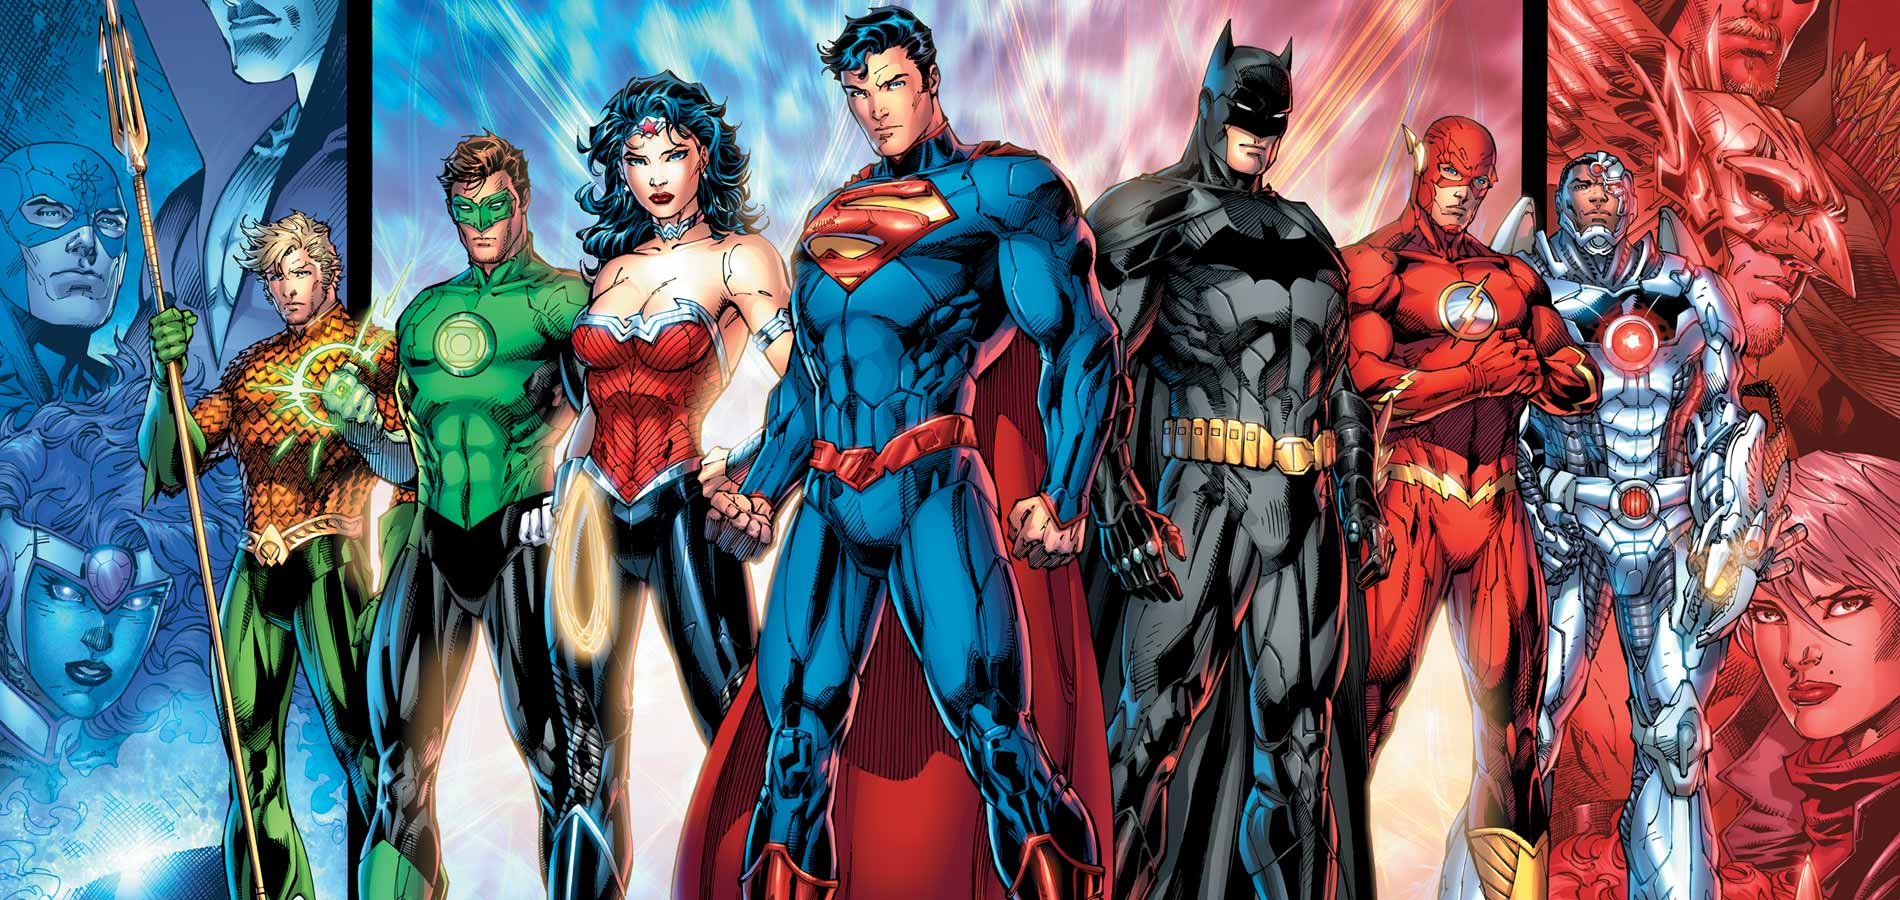 Justice League DC